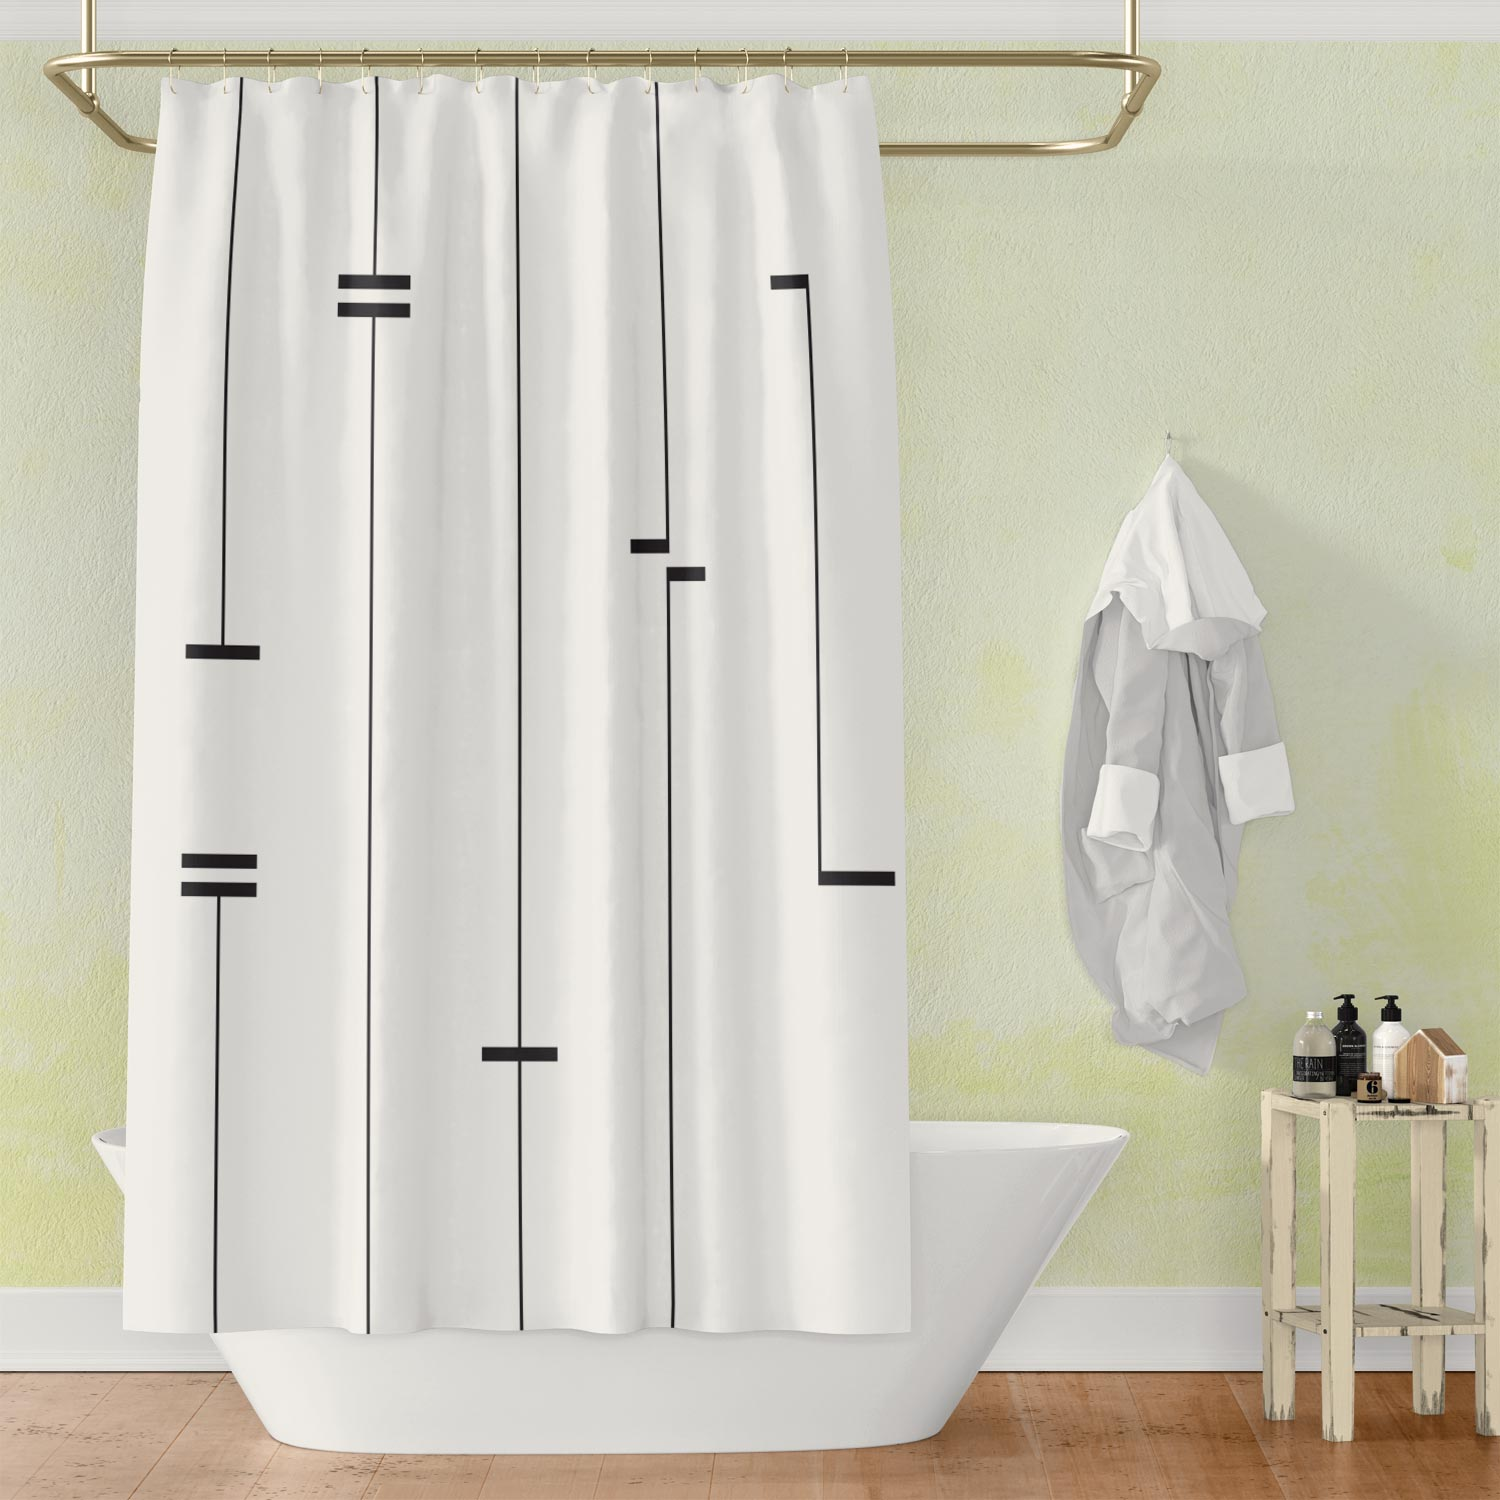 Abstract Mud Cloth Shower Curtain II